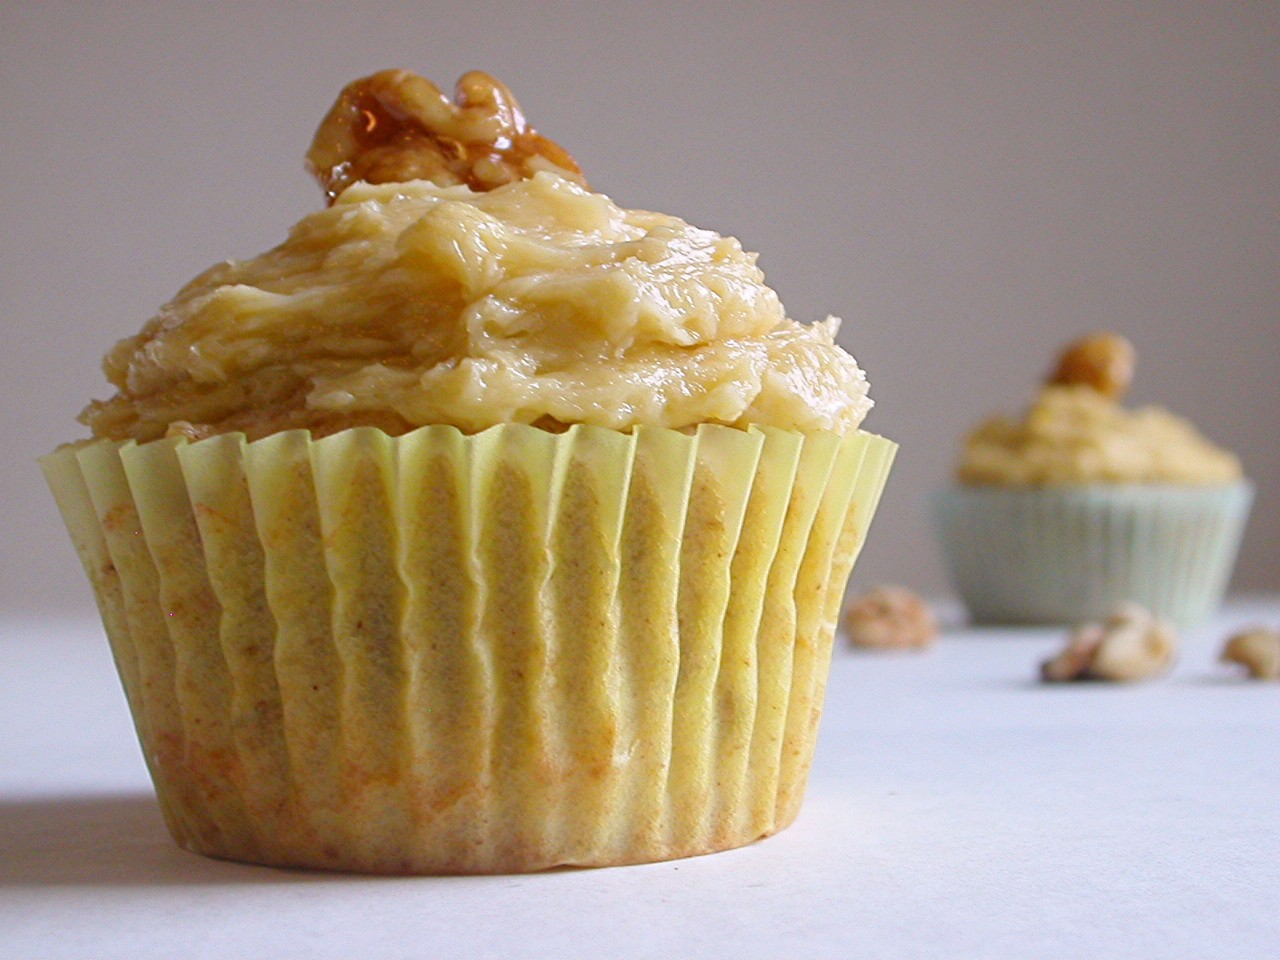 martha martha martha (maple walnut cupcakes)